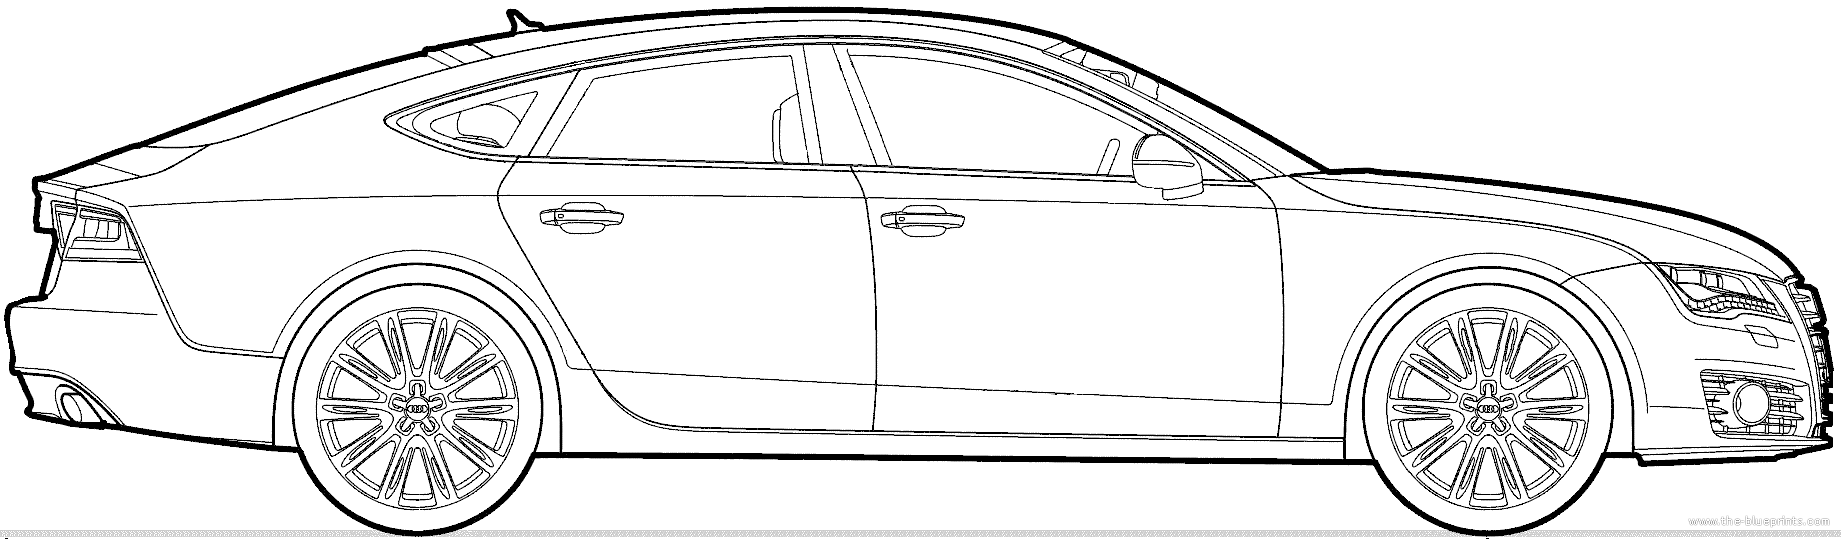 Blueprints Cars Audi A7 Sportback 2013 Automobile S7